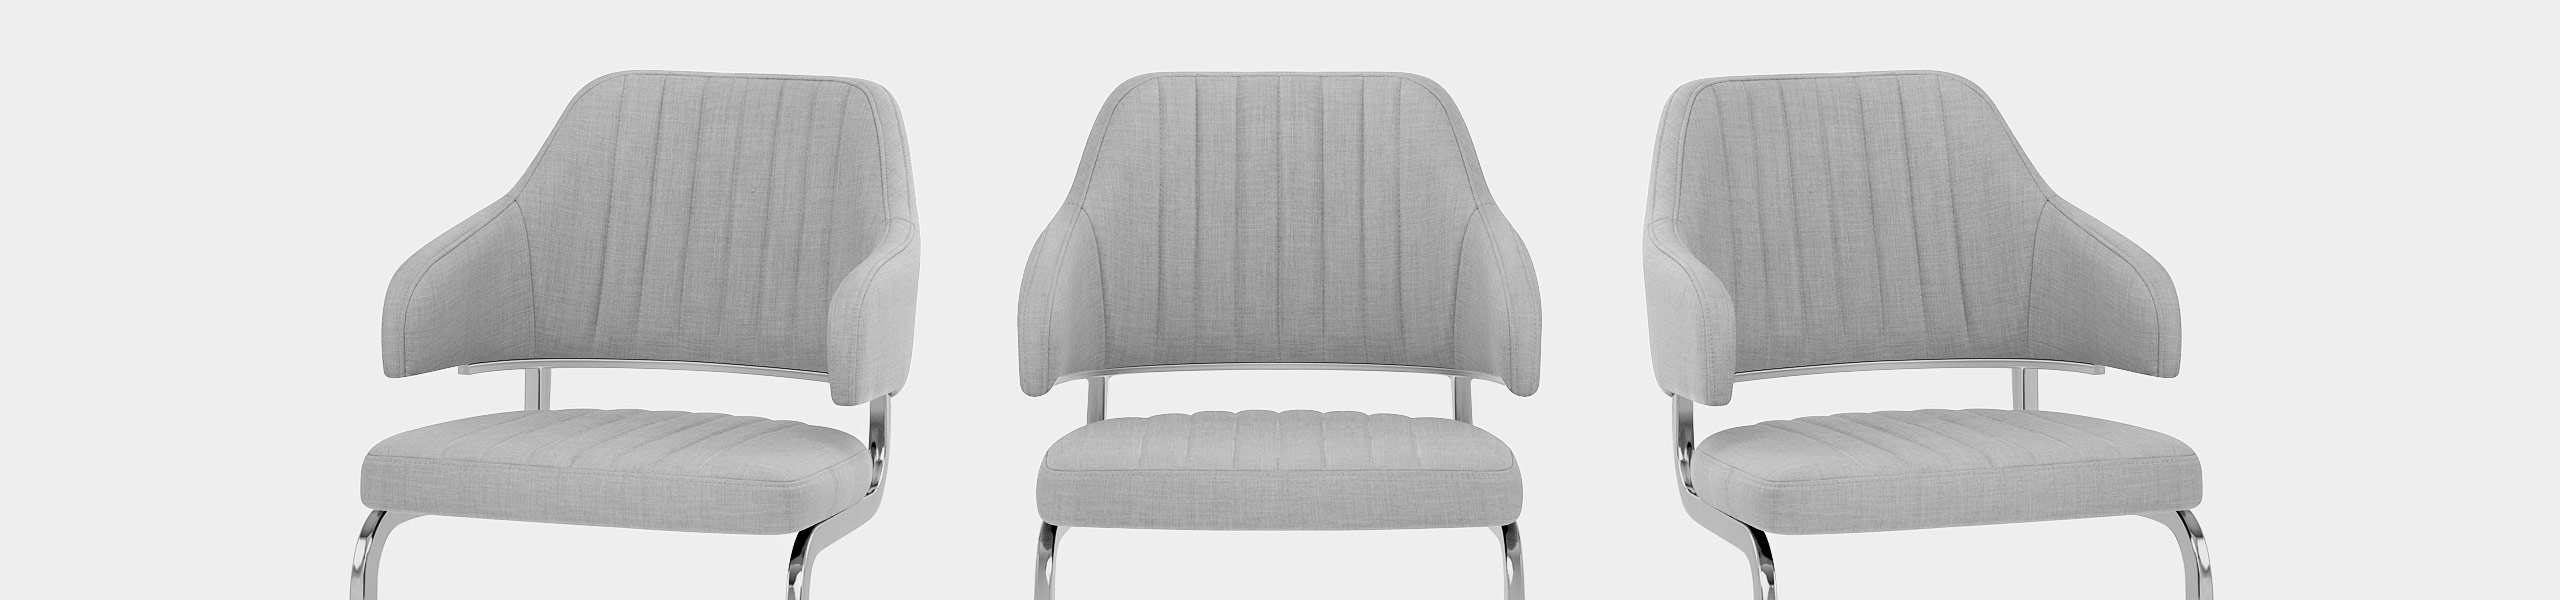 Horizon Chair Grey Fabric Video Banner